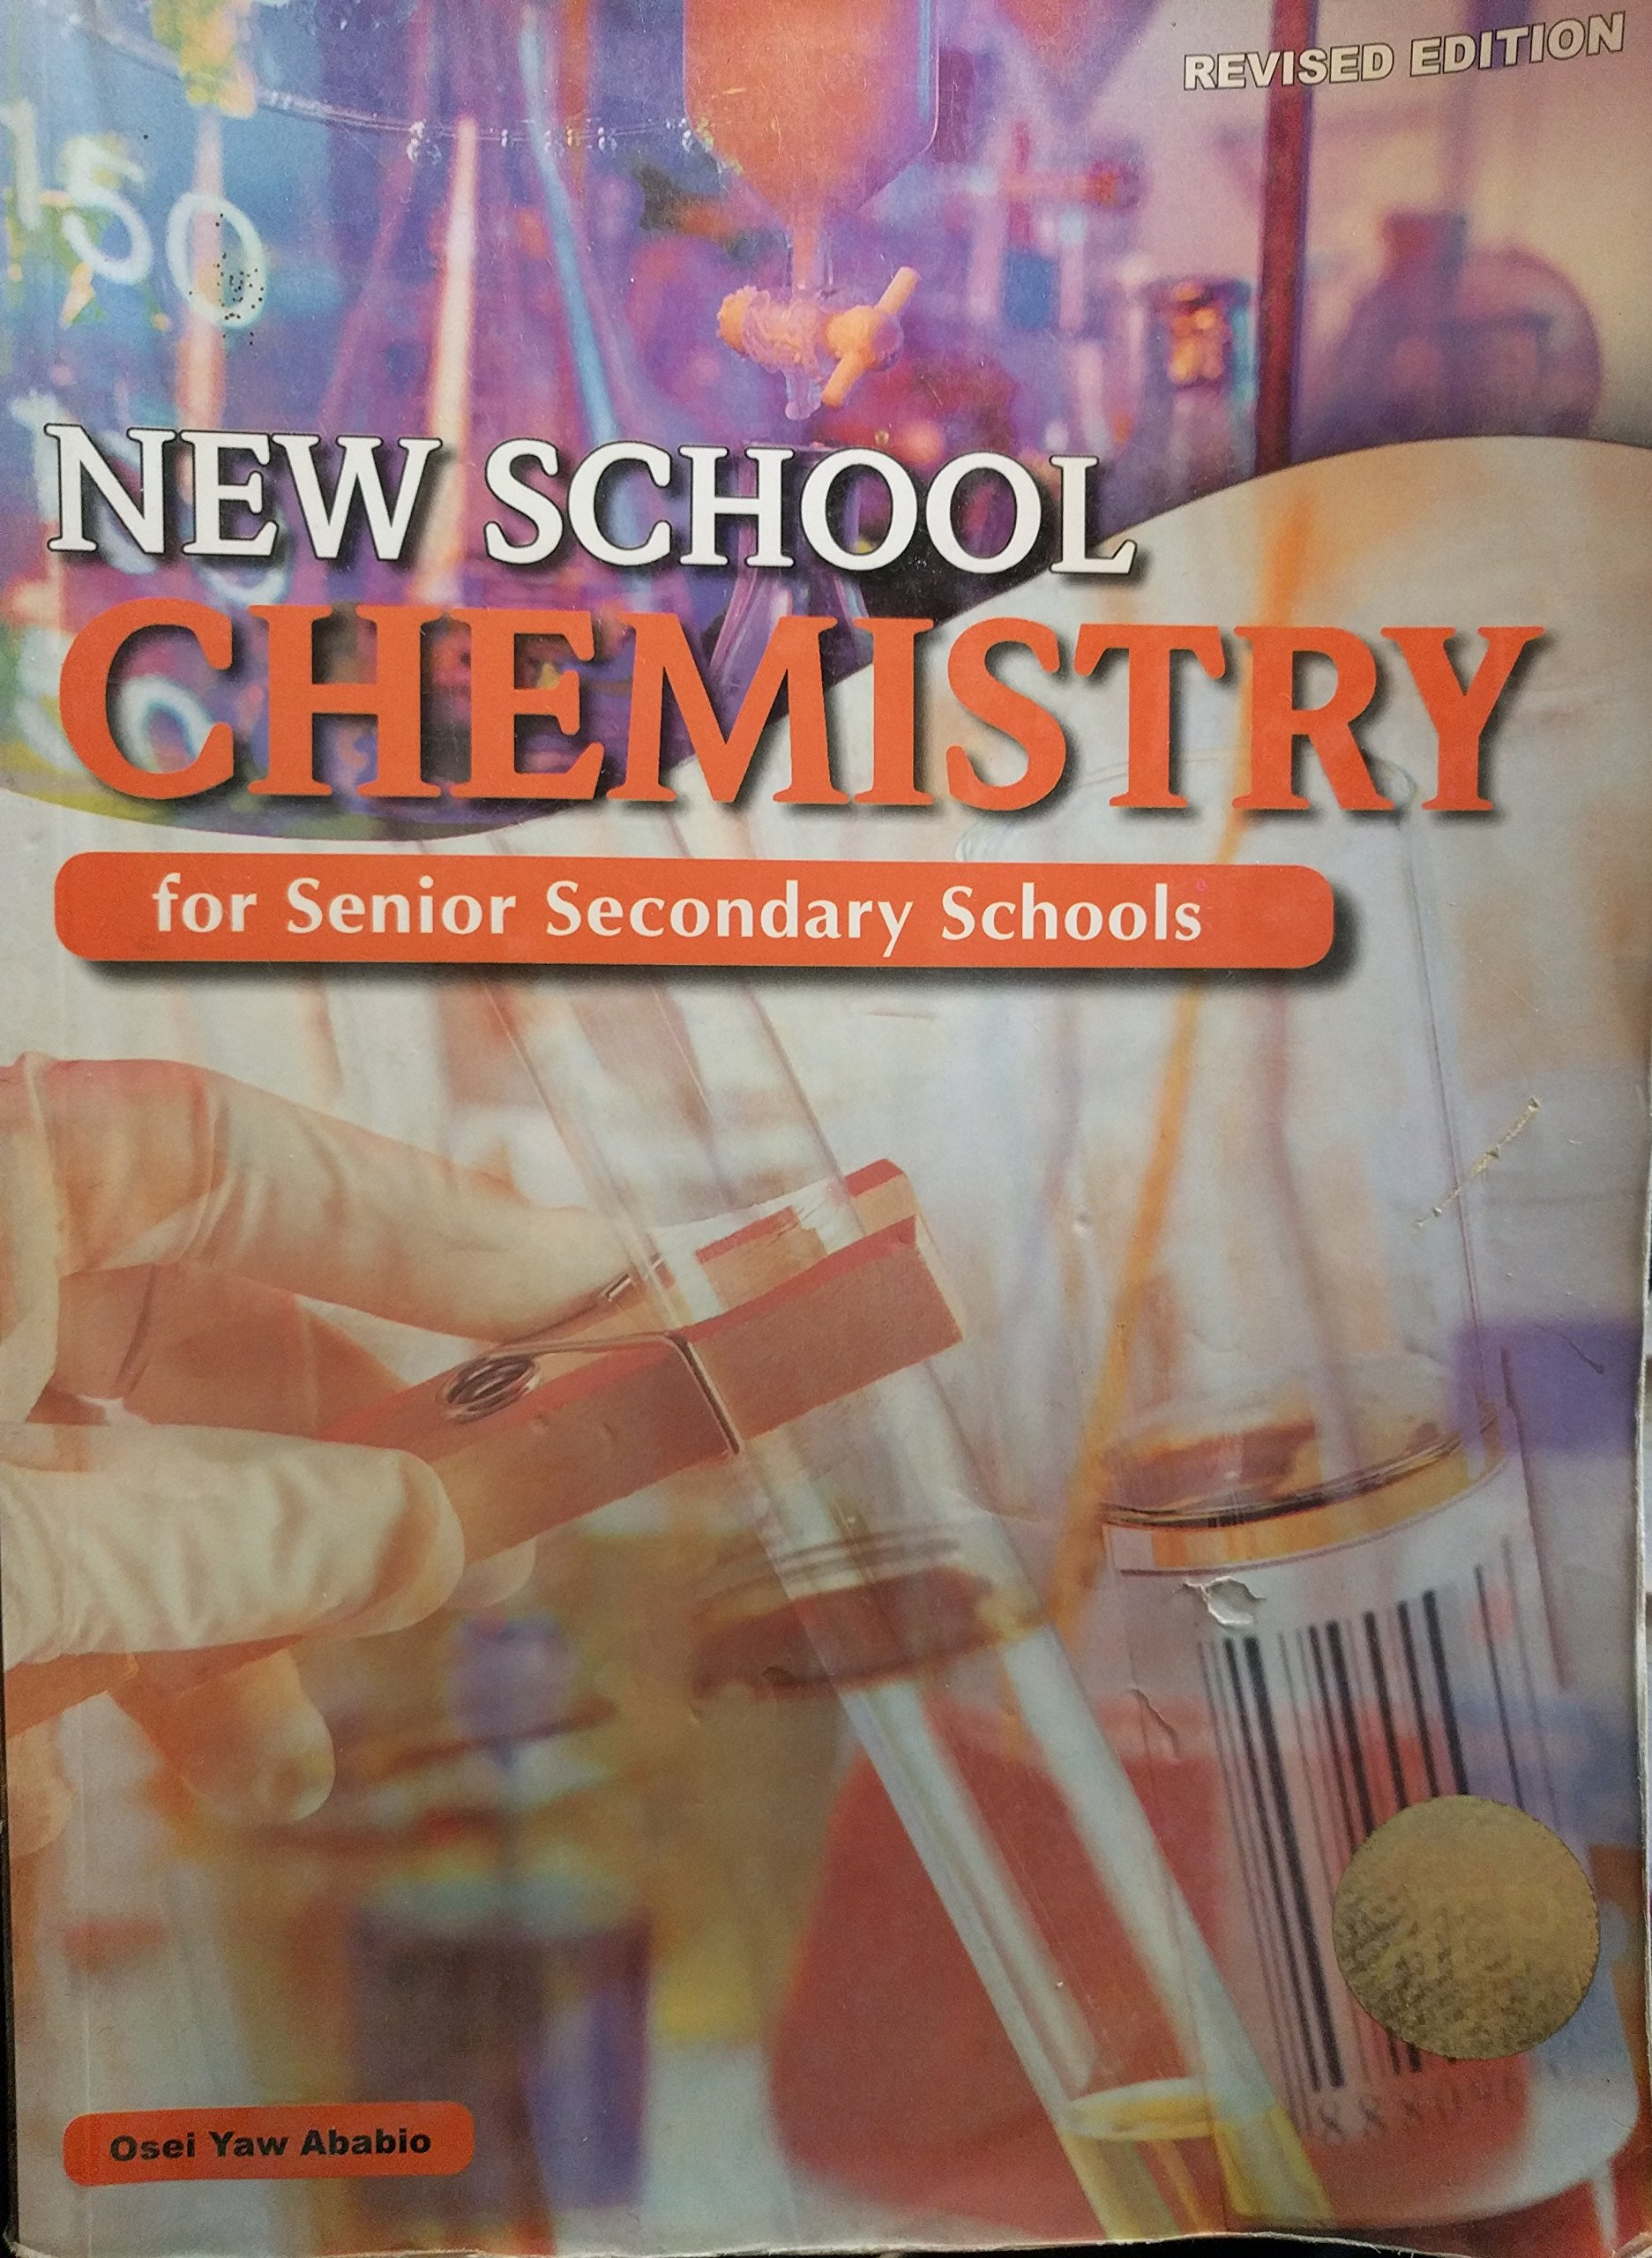 New school chemistry for senior secondary schools osef yaw ababio new school chemistry for senior secondary schools osef yaw ababio 9789781755316 amazon books fandeluxe Images